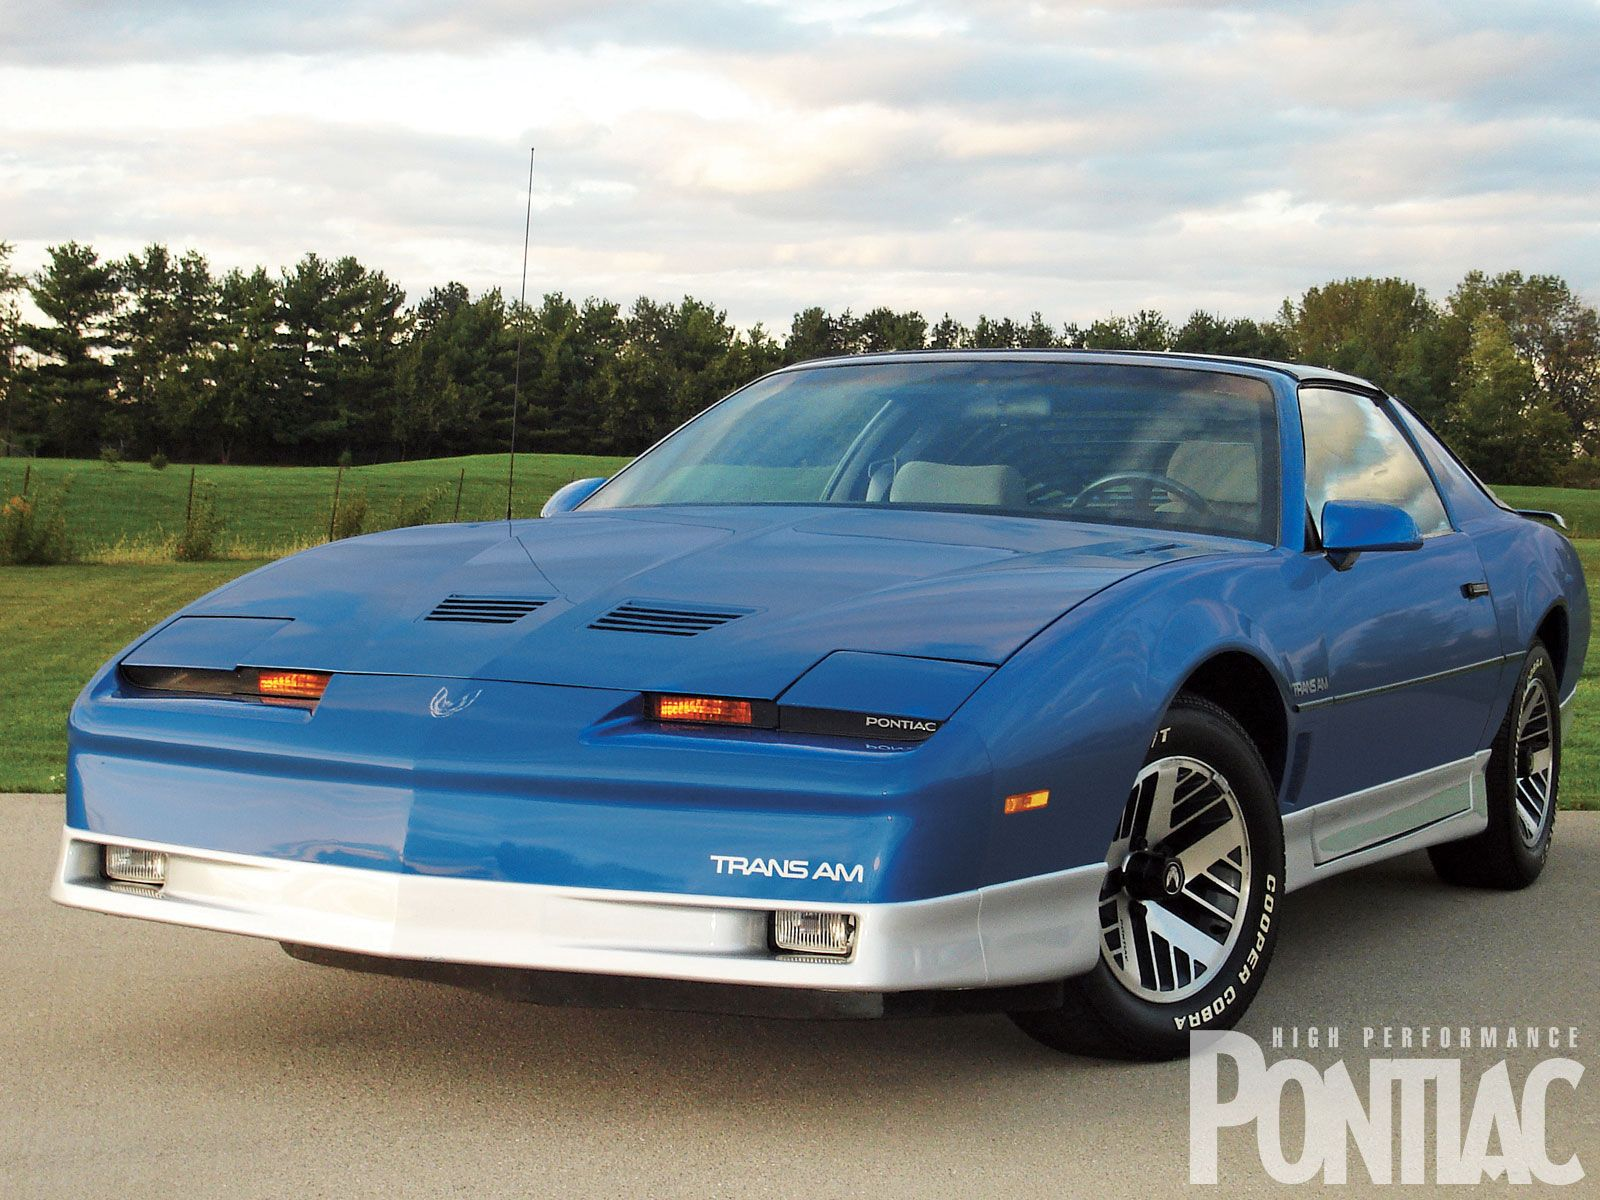 1986 pontiac firebird trans am yes auntie diane had the best car pontiac firebird pontiac cars pontiac firebird trans am 1986 pontiac firebird trans am yes